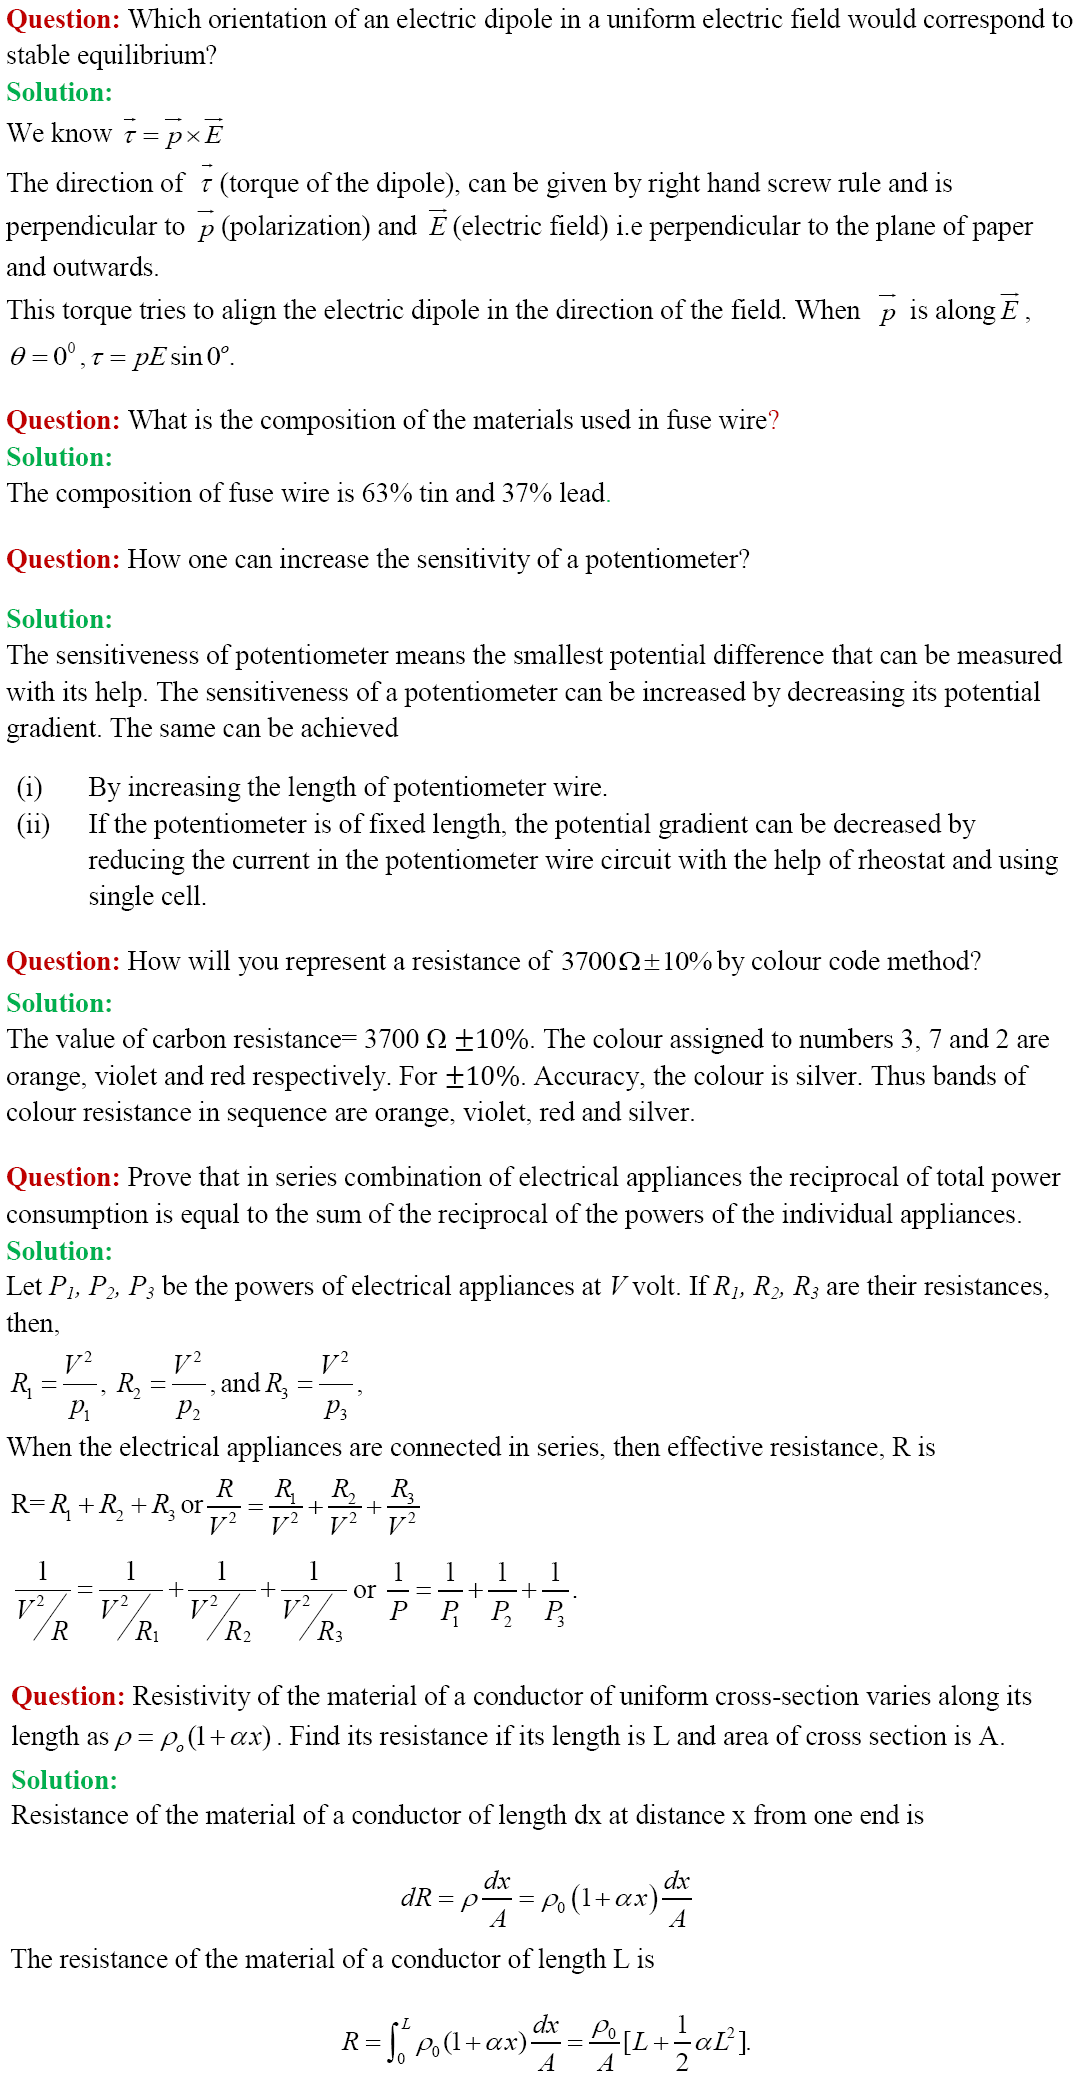 How to Write Good Physics Papers   blogger.com